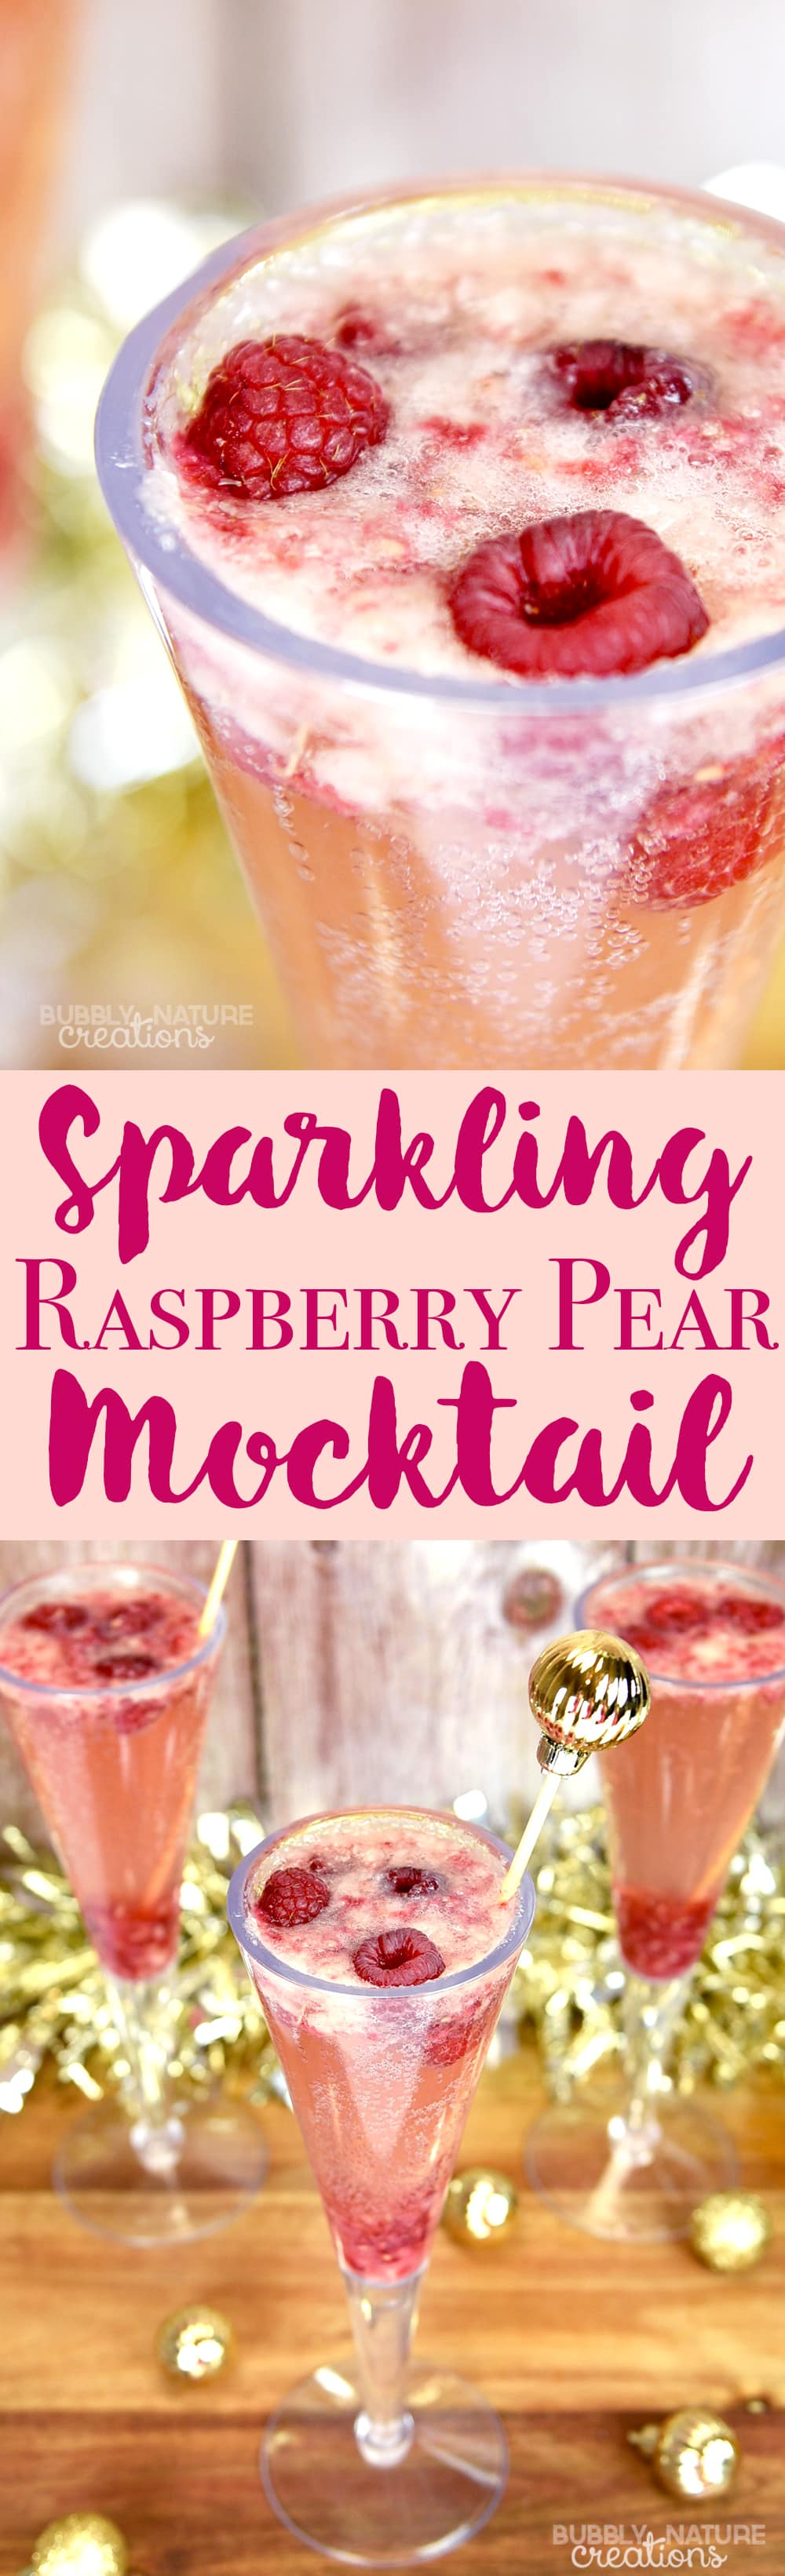 Sparkling Raspberry Pear Mocktail! Delicious drink for a holiday party or anytime!